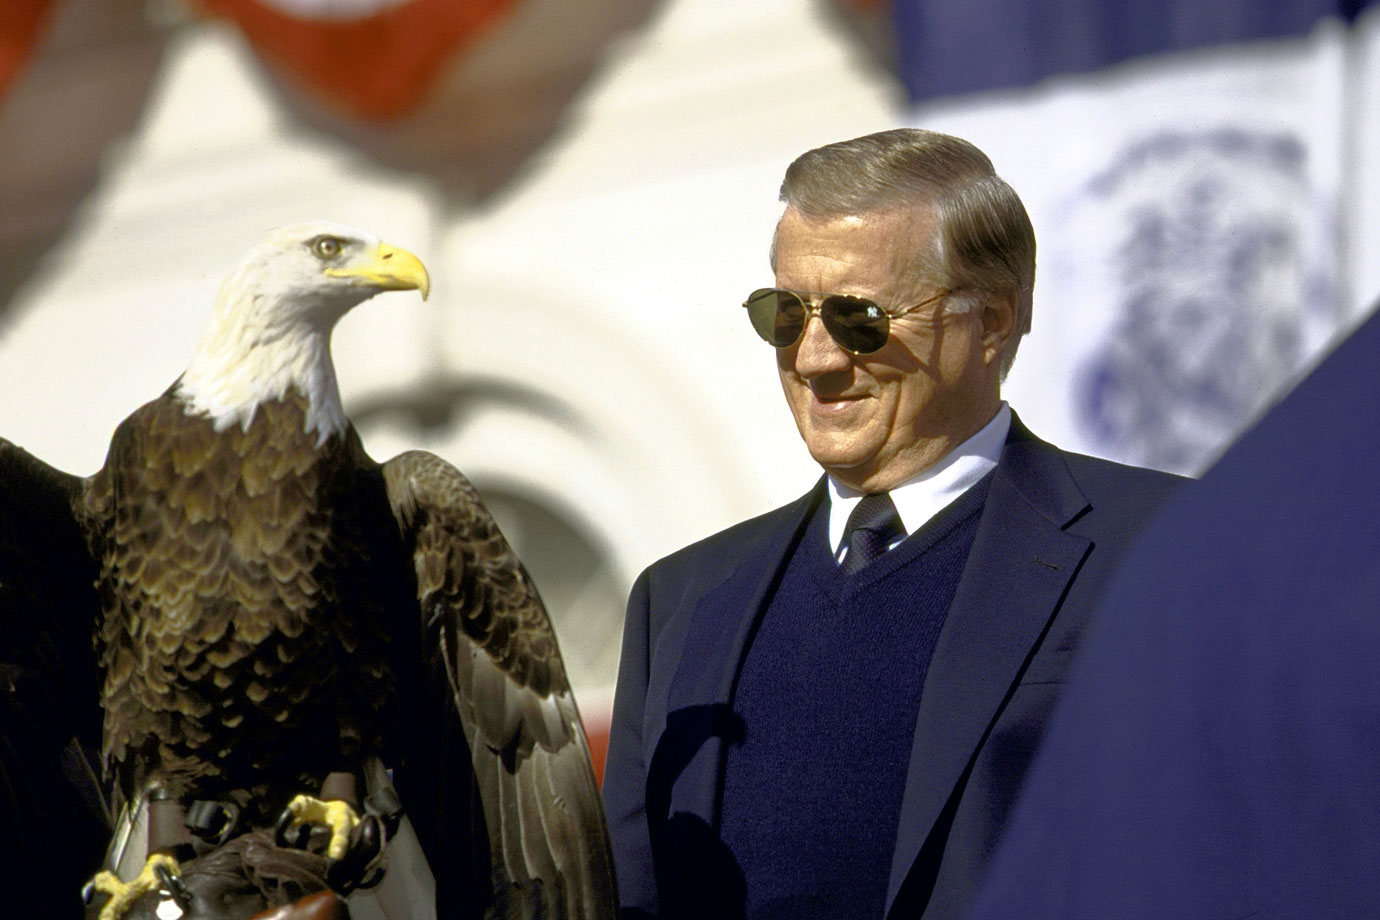 George Steinbrenner admires the bald eagle Challenger during the New York Yankees victory parade on Broadway on Oct. 29, 1999 in New York City.